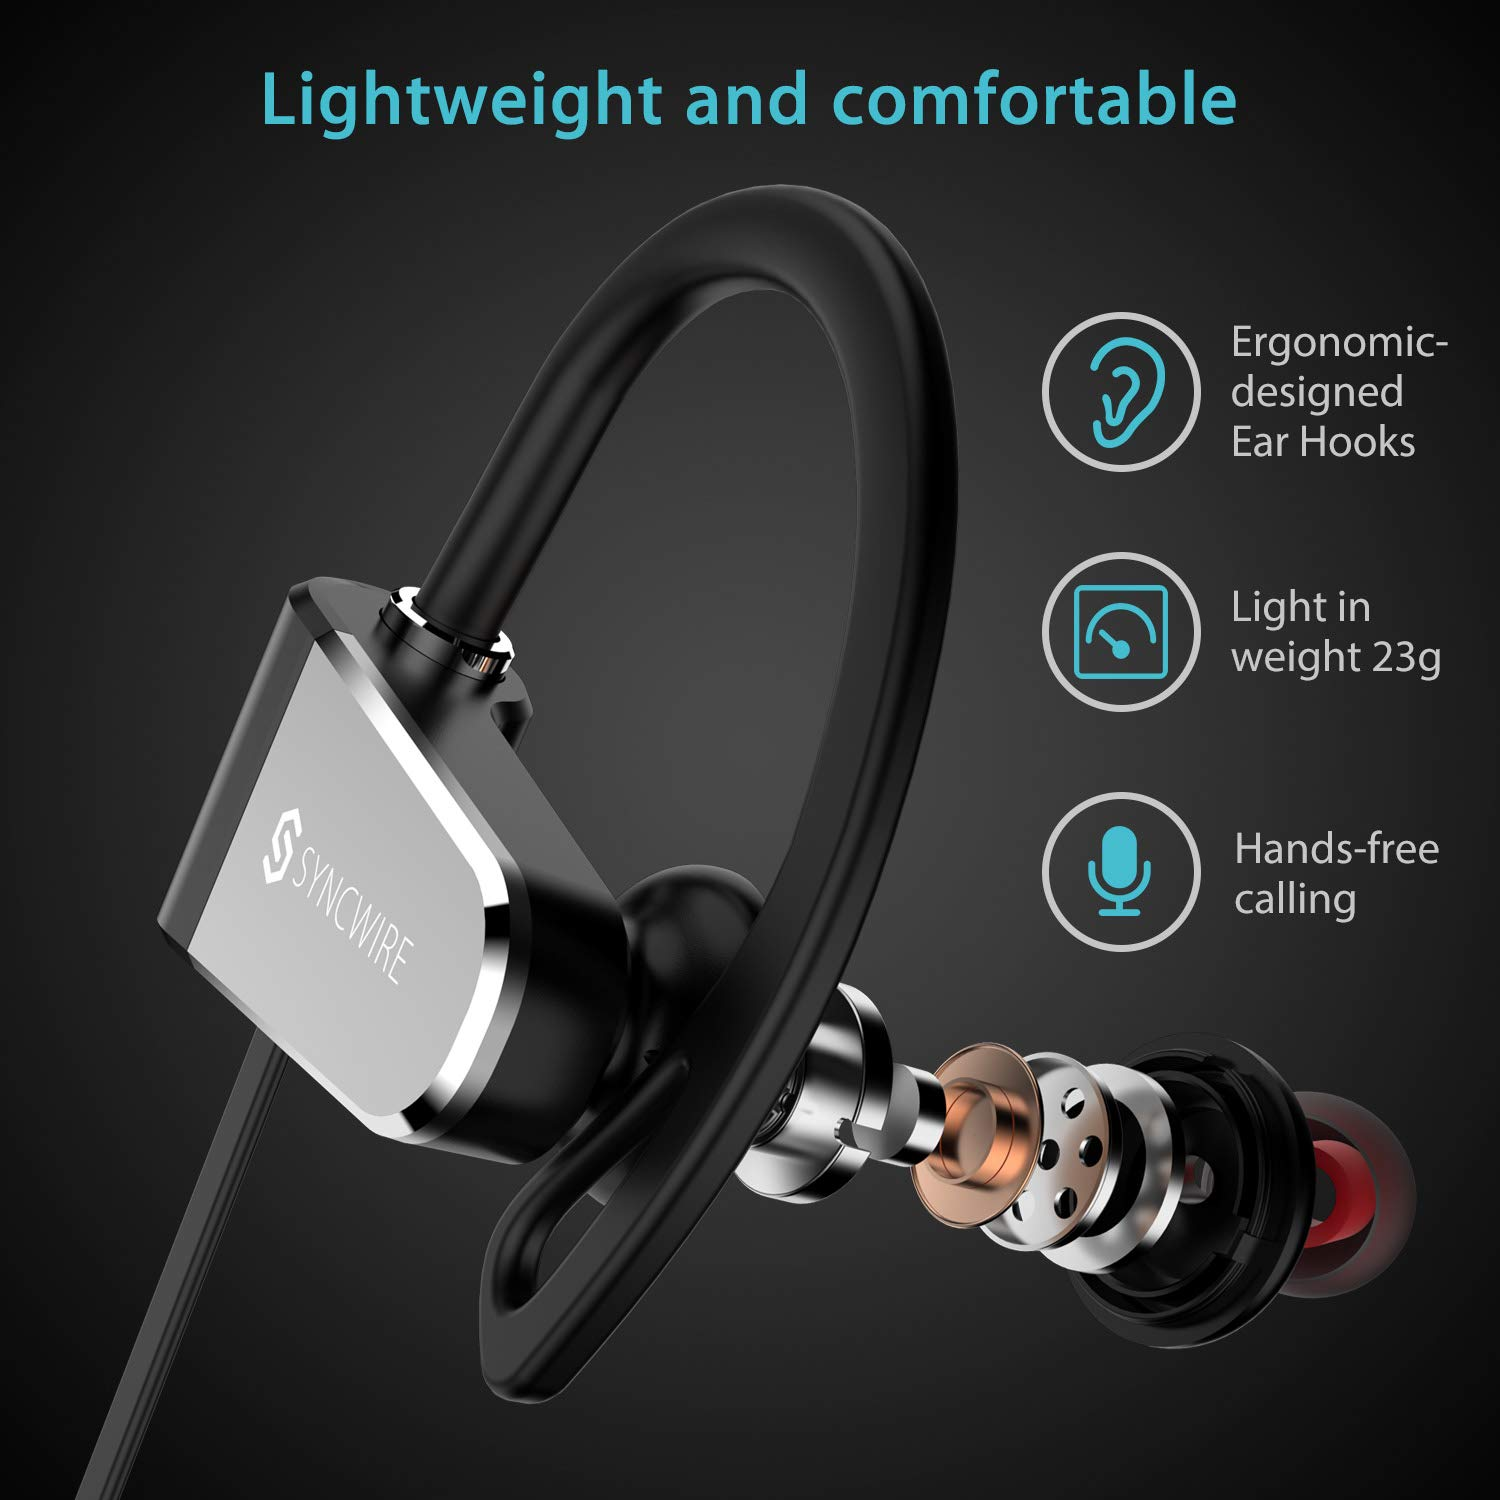 Amazon.com: Bluetooth Headphones Syncwire Wireless Headphones - [9-11 Hrs Playtime] IPX7 Waterproof Sports Earphones with Mic, Lightweight, Noise Cancelling ...